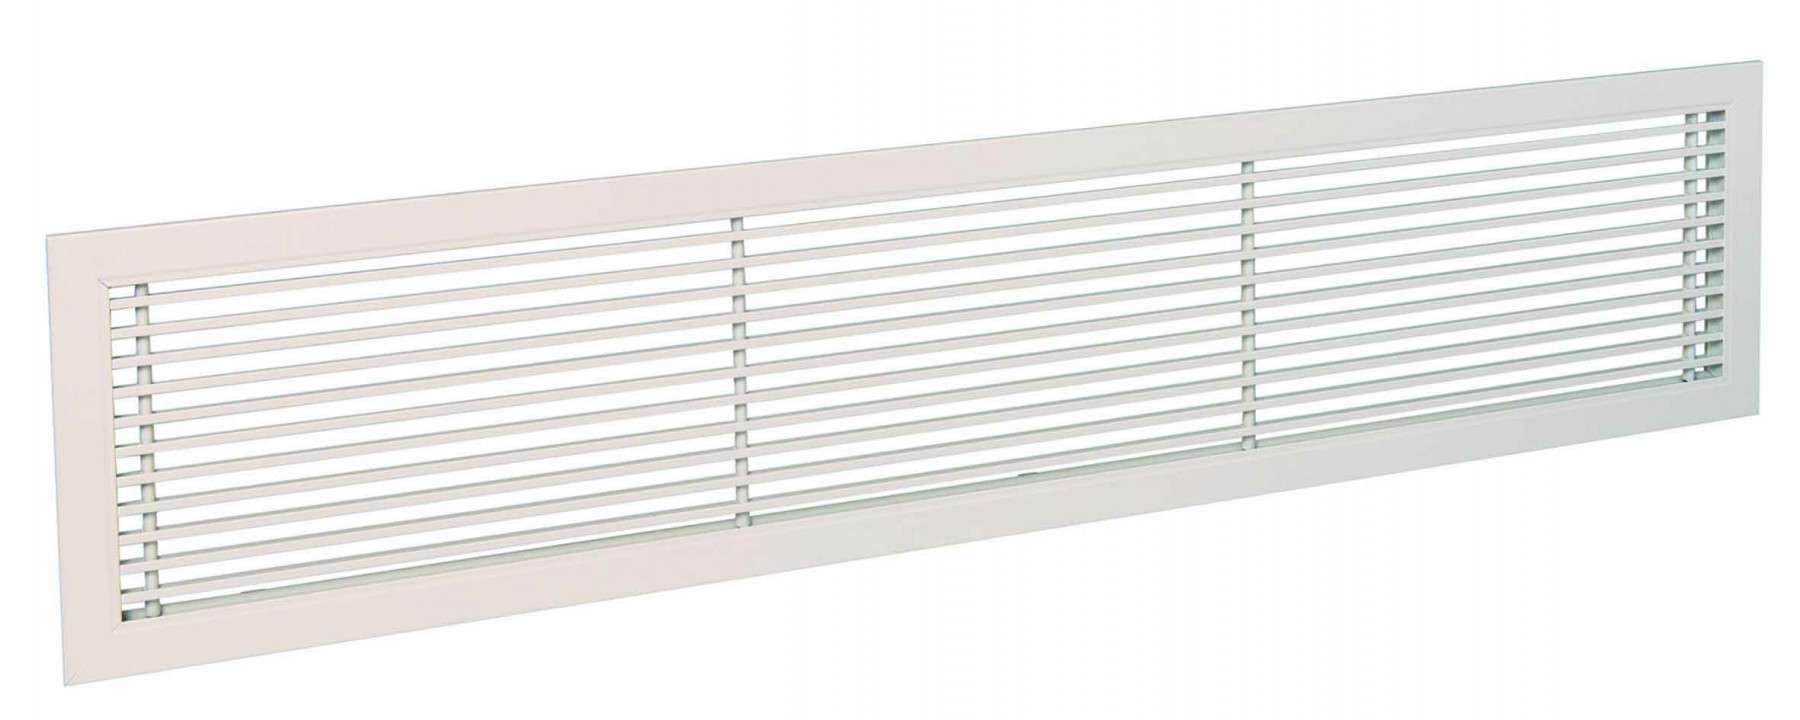 Grilles intérieures GRIDLINED WALL F3 600X150 RAL9010 Aldes 11050571